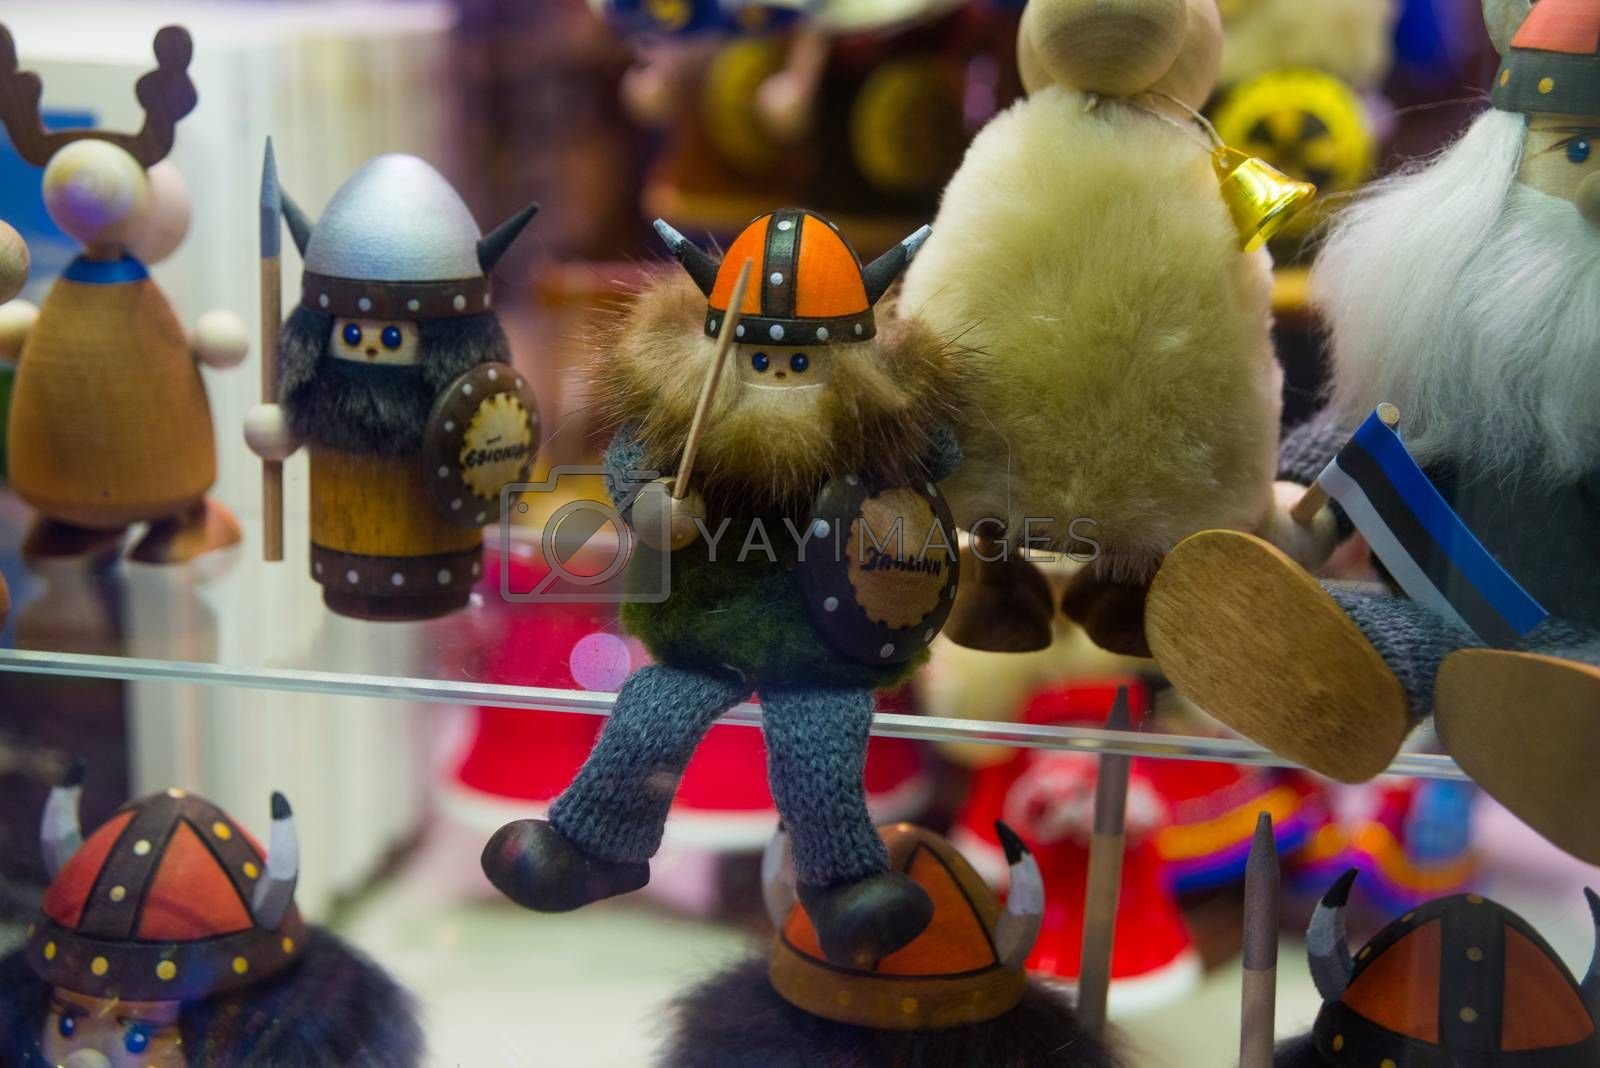 View of traditional Tallinn Souvenirs miniature toys of the old town in the souvenir shop of the Old town, Estonia, Tallinn.